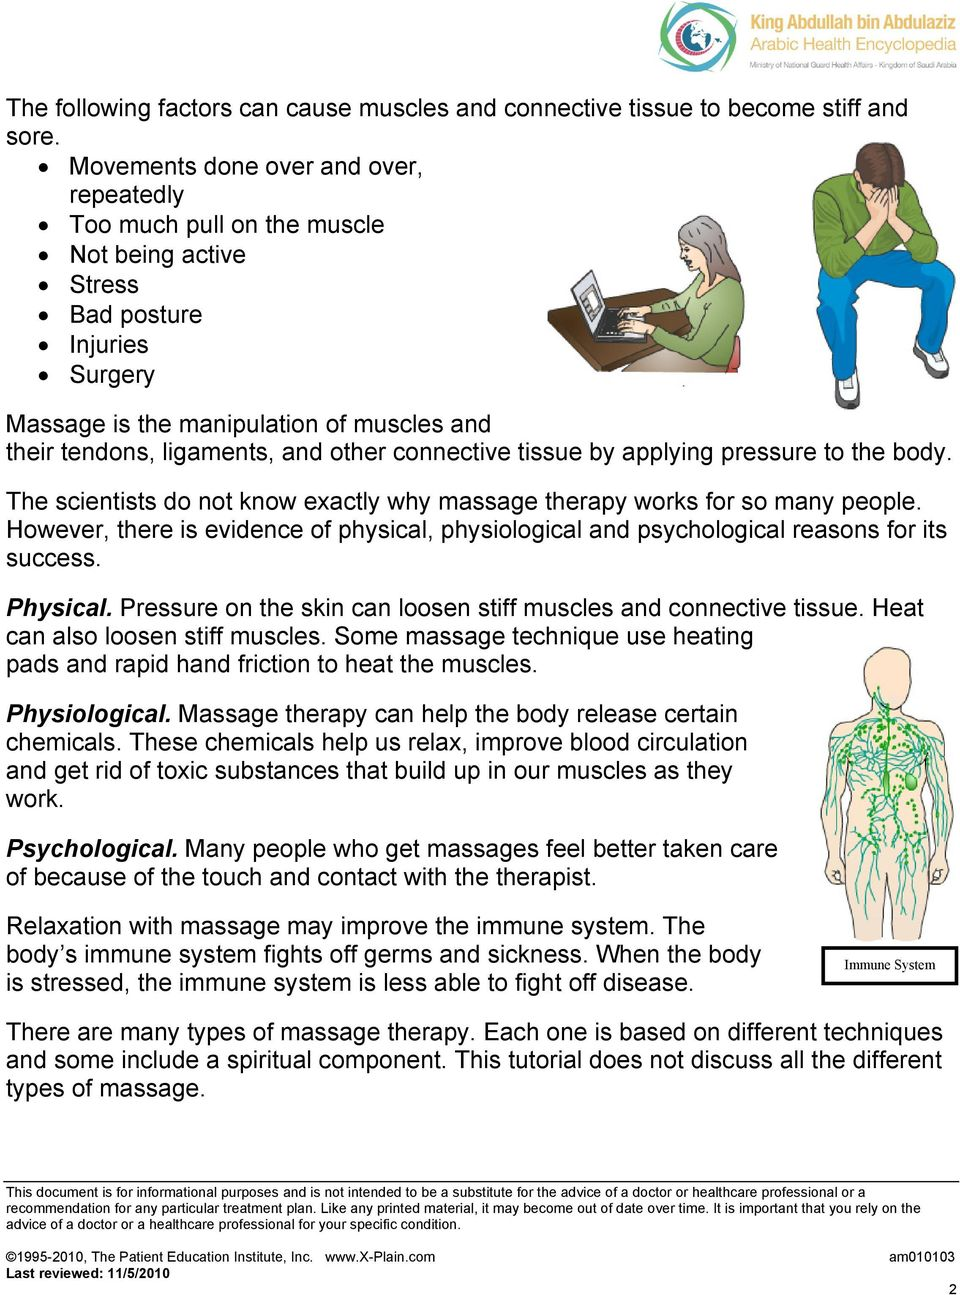 other connective tissue by applying pressure to the body. The scientists do not know exactly why massage therapy works for so many people.